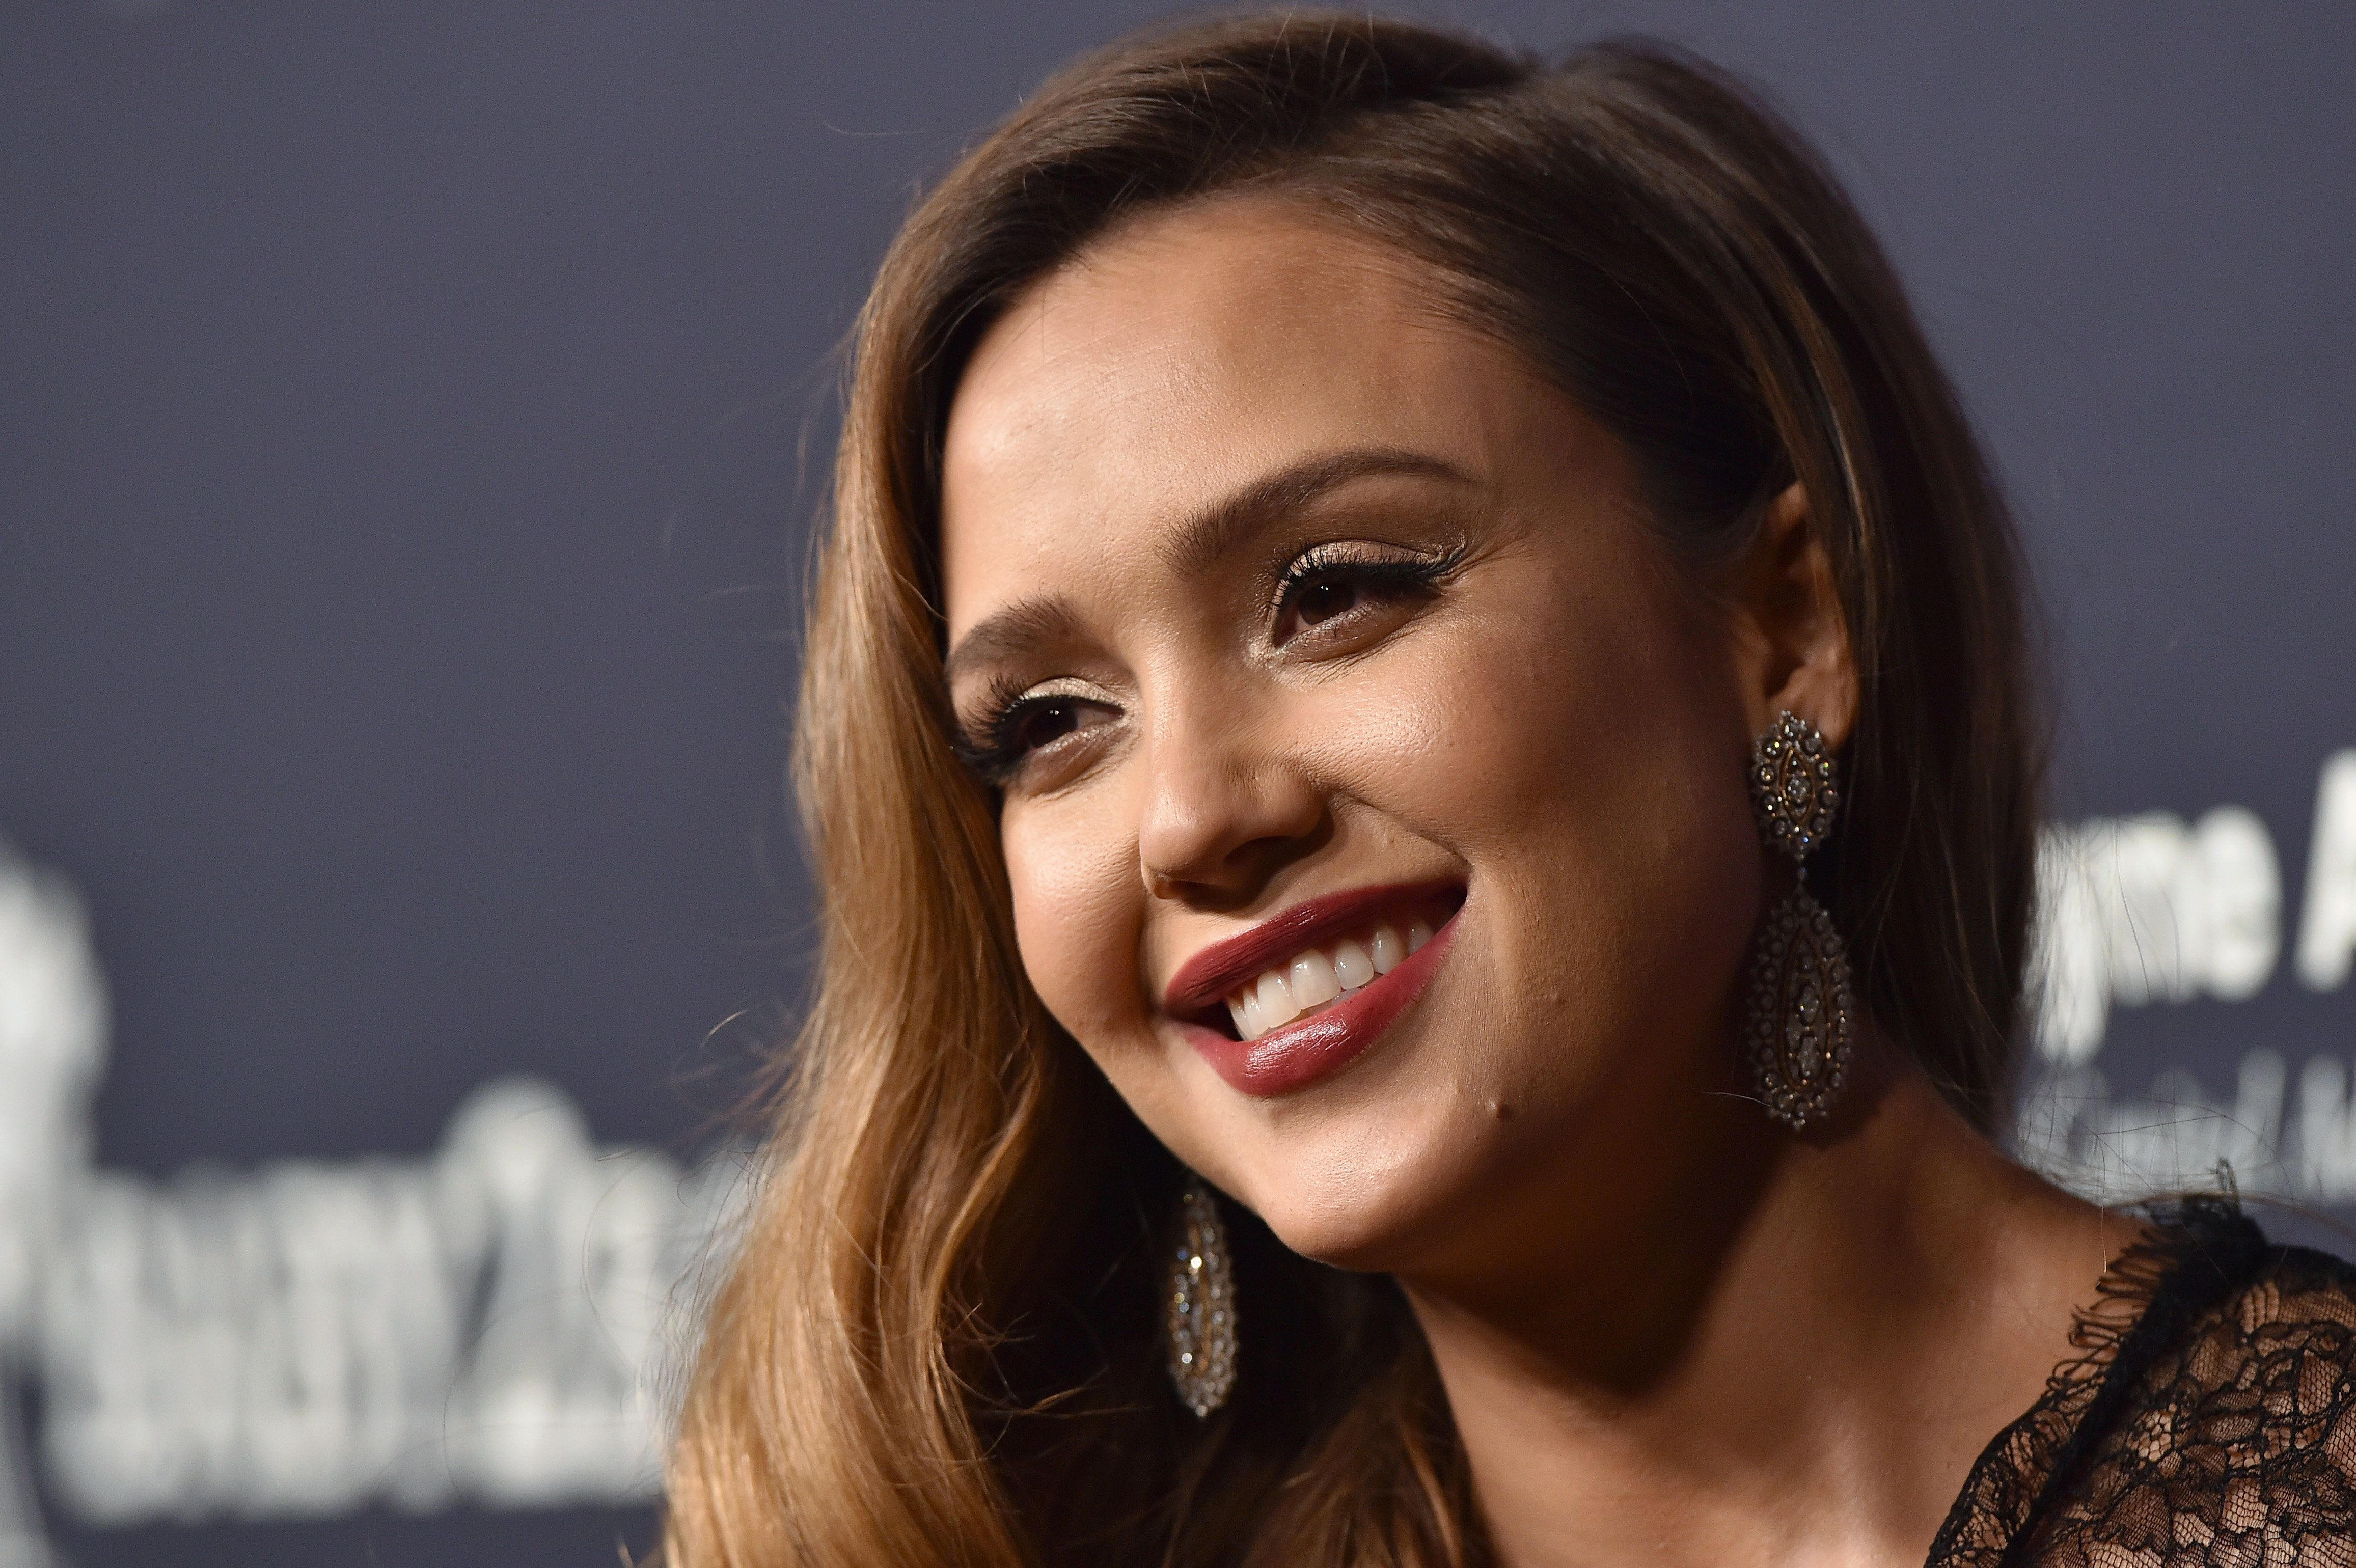 CULVER CITY, CA - NOVEMBER 11:  Actress Jessica Alba attends the 2017 Baby2Baby Gala at 3LABS on November 11, 2017 in Culver City, California.  (Photo by Axelle/Bauer-Griffin/FilmMagic)